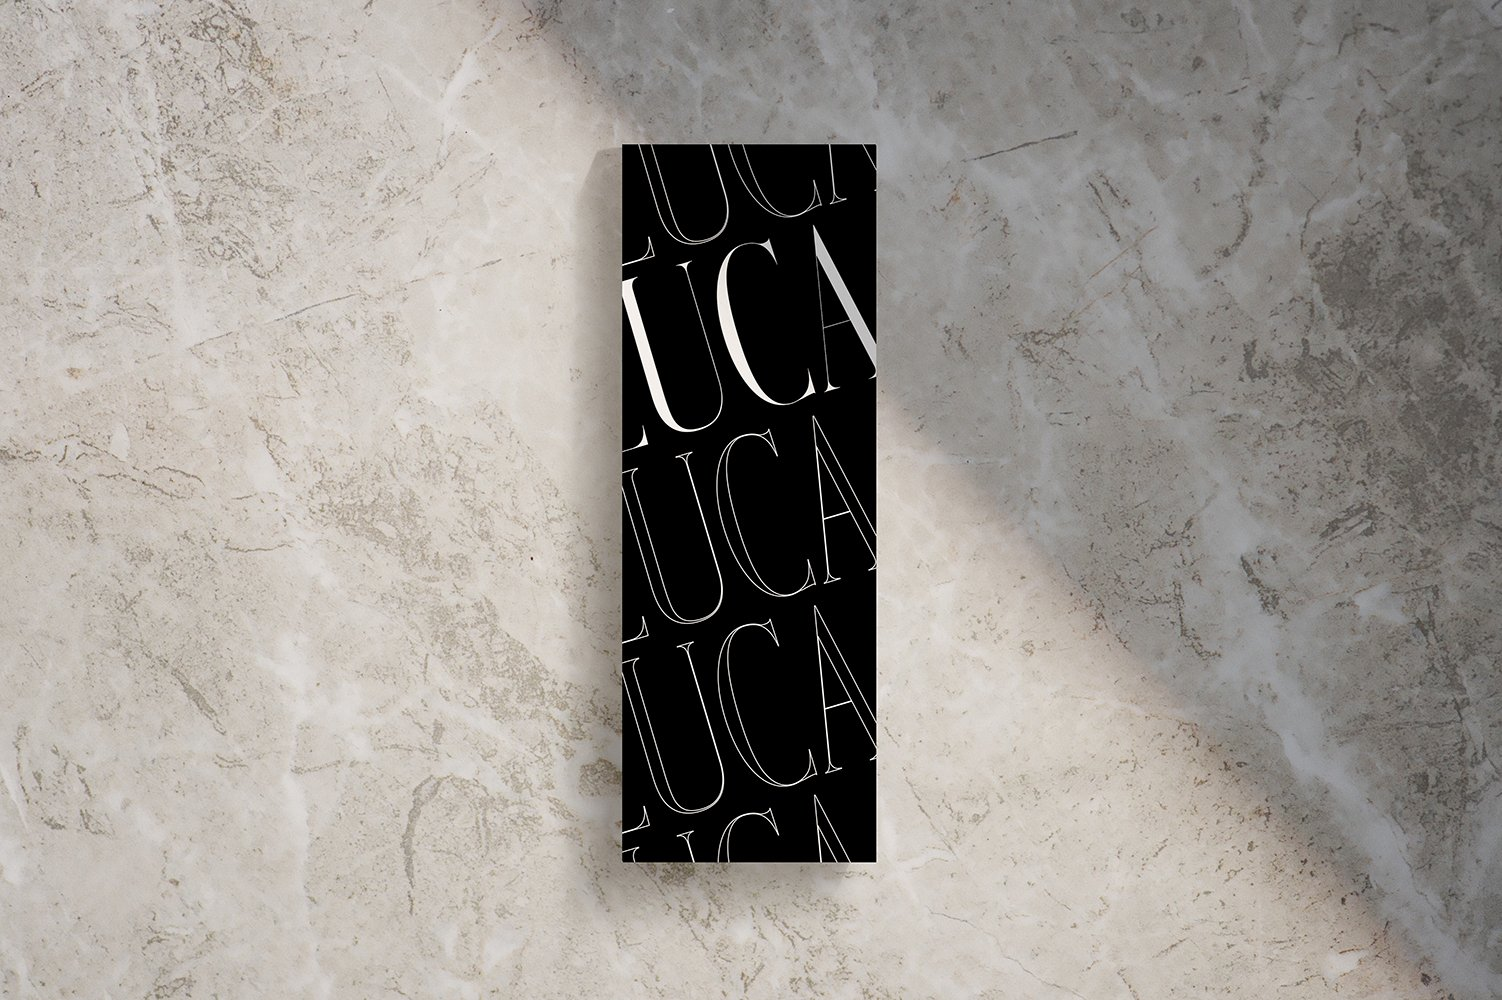 Da Luca Menu | Fiona Gobbo Creative | Italian restaurant menu design for Da Luca